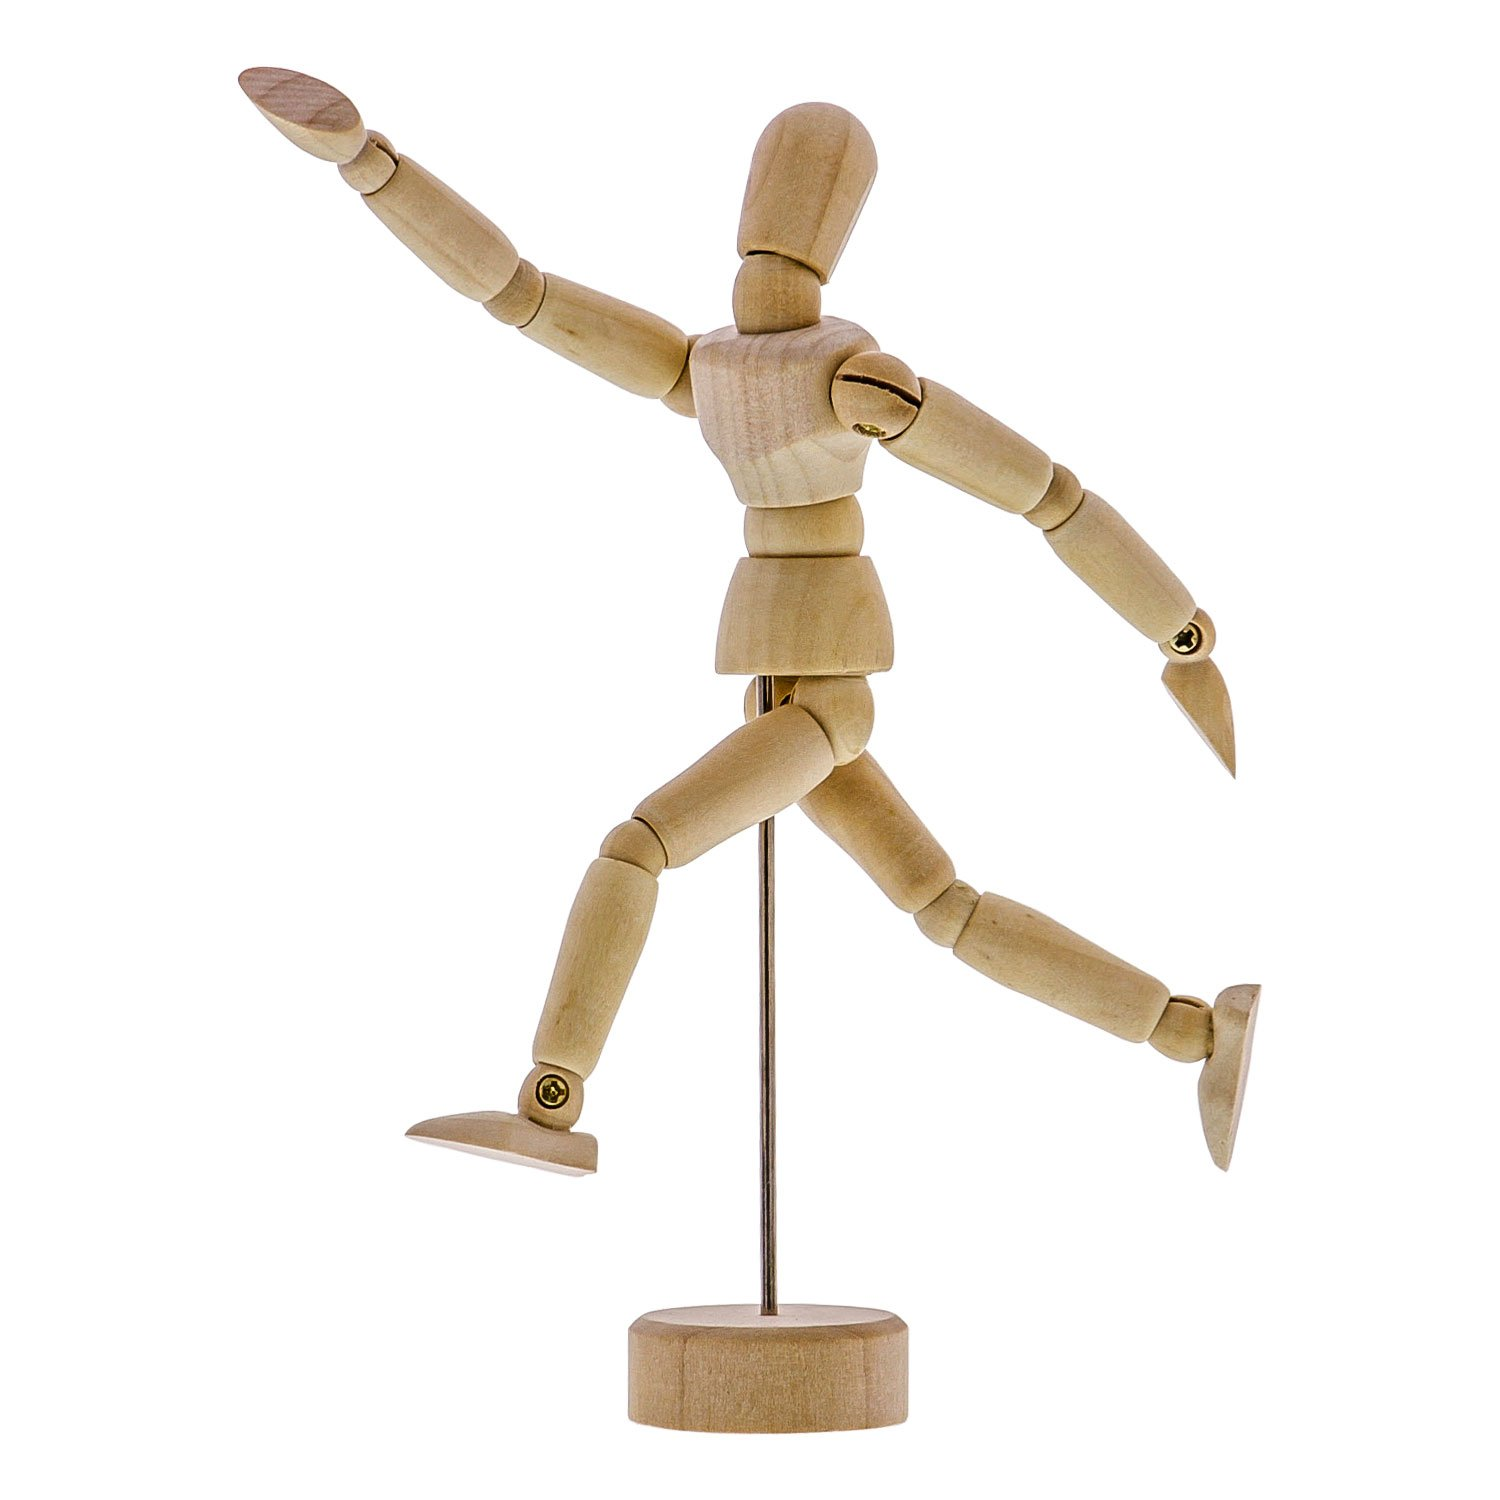 US Art Supply Wood Artist Drawing Manikin Articulated Mannequin with Base and Flexible Body - Perfect For Drawing the Human Figure (5 Male) M-5MALE